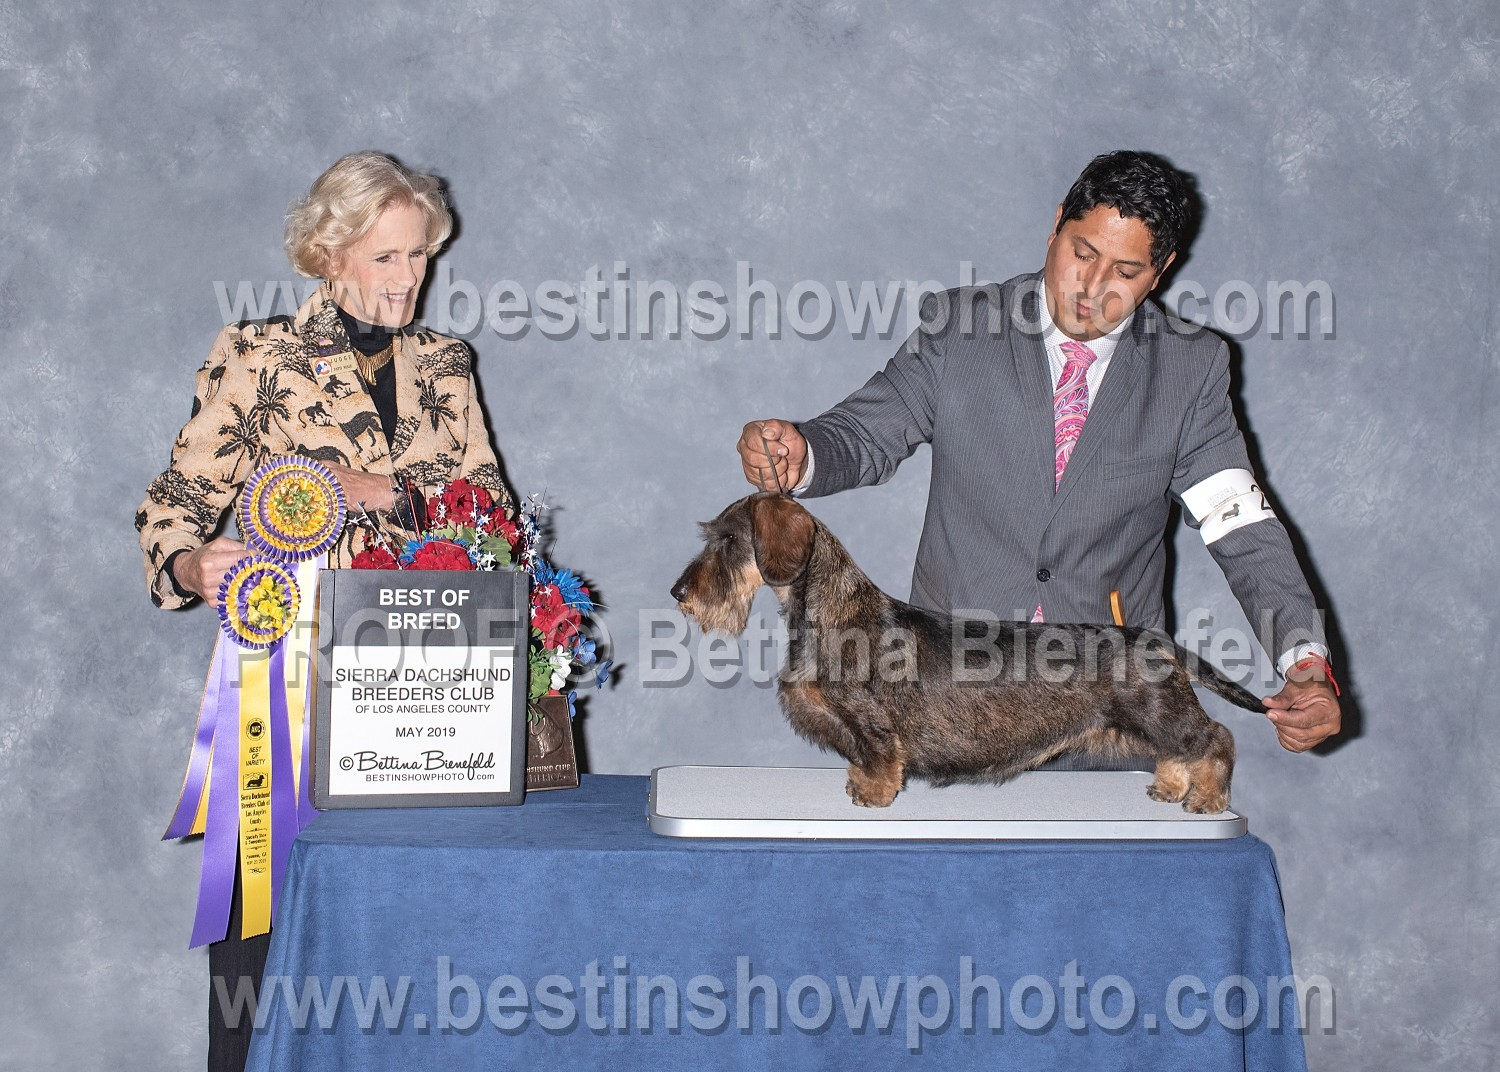 Sierra Dachshund Breeders Club ~ May 2019